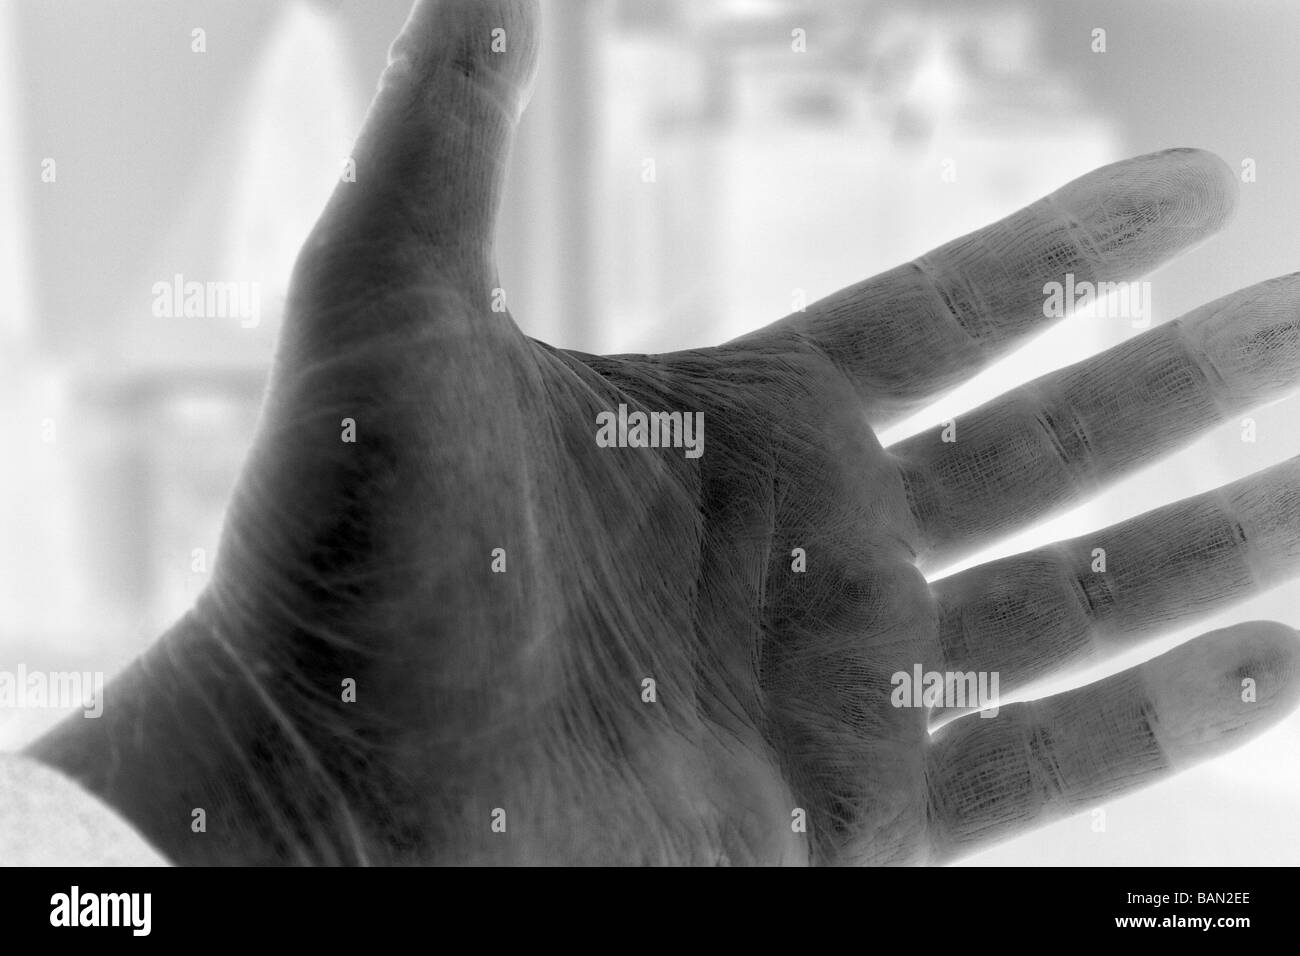 Horizontal black white photograph (digitally altered to show as negative) of man's outstreted hand palm side - Stock Image